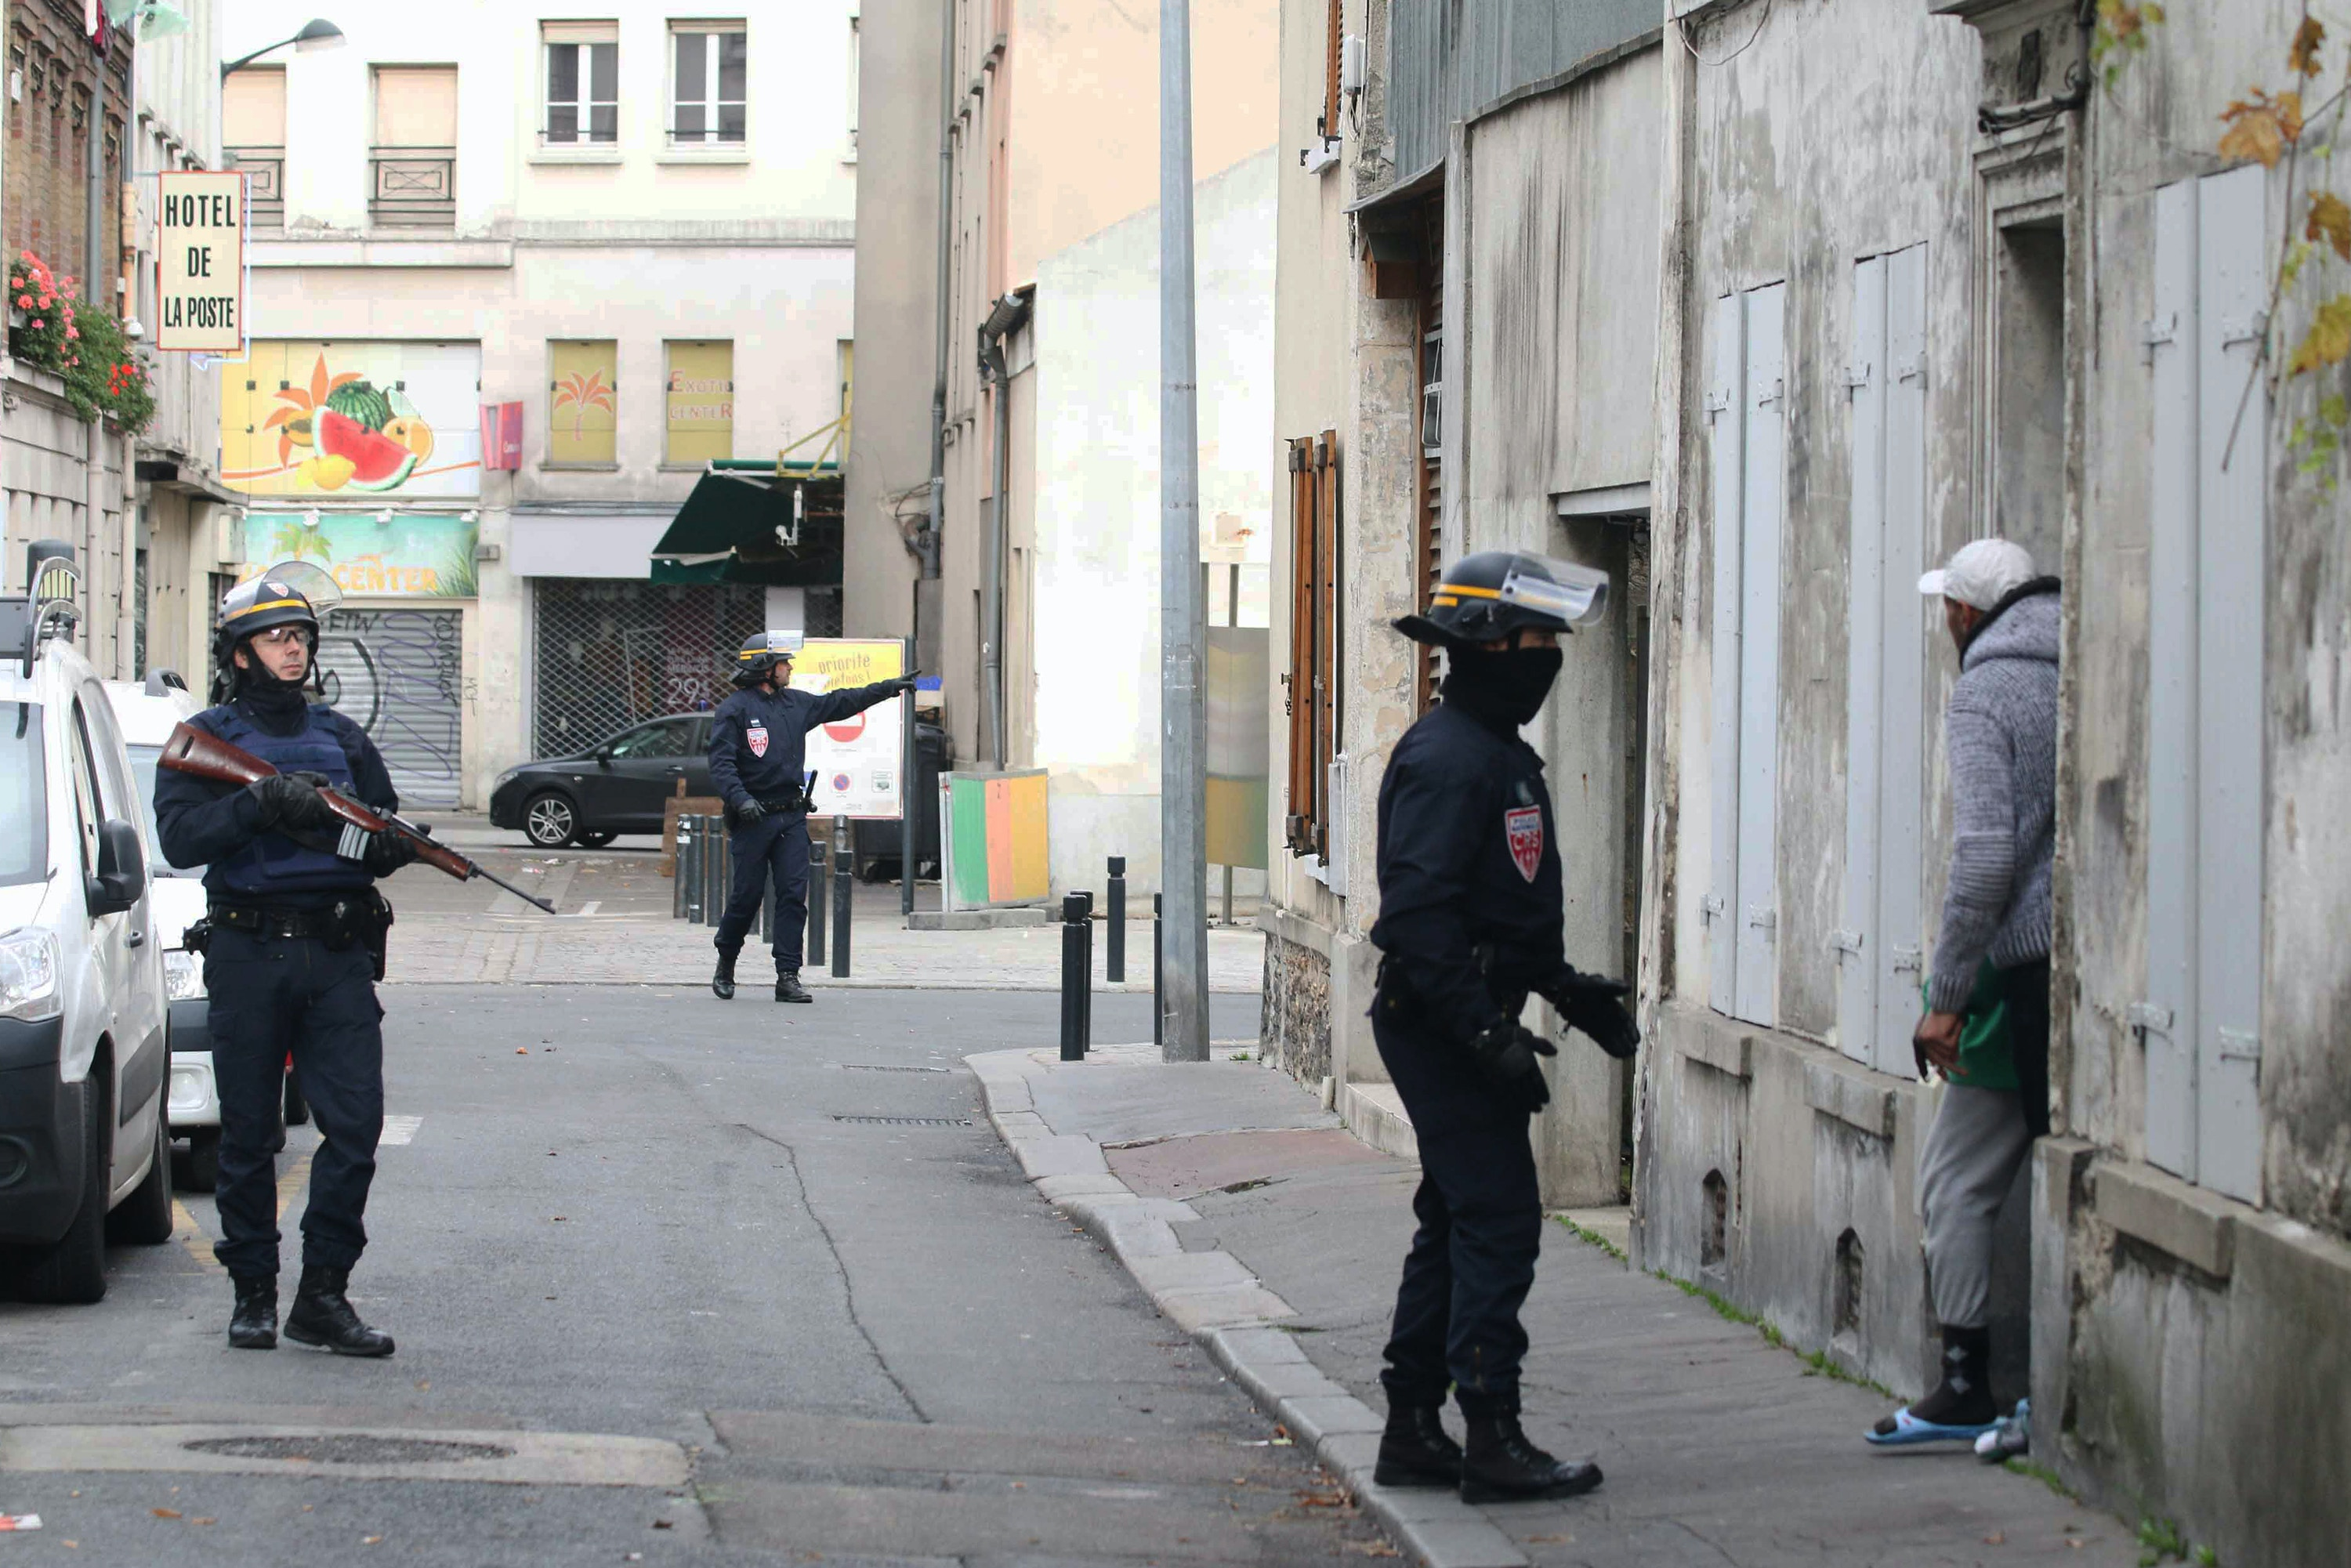 PARIS, FRANCE - NOVEMBER 18: Armed police asks residents near the assault area to stay inside at Saint-Denis on November 18, 2015 in Paris, France. Officials said police had been hunting Abdelhamid Abaaoud, a Belgian Islamist militant accused of masterminding the Nov. 13 carnage, but more than seven hours after the launch of the pre-dawn raid it was still unclear if they had found him. Seven people were arrested in the operation, which started with a barrage of gunfire, including three people who were pulled from the apartment, officials said.PHOTOGRAPH BY Yann Schreiber / Barcroft USAUK Office, London.T +44 845 370 2233W www.barcroftmedia.comUSA Office, New York City.T +1 212 796 2458W www.barcroftusa.comIndian Office, Delhi.T +91 11 4053 2429W www.barcroftindia.com (Photo credit should read Yann Schreiber / Barcroft USA / Barcroft Media via Getty Images)